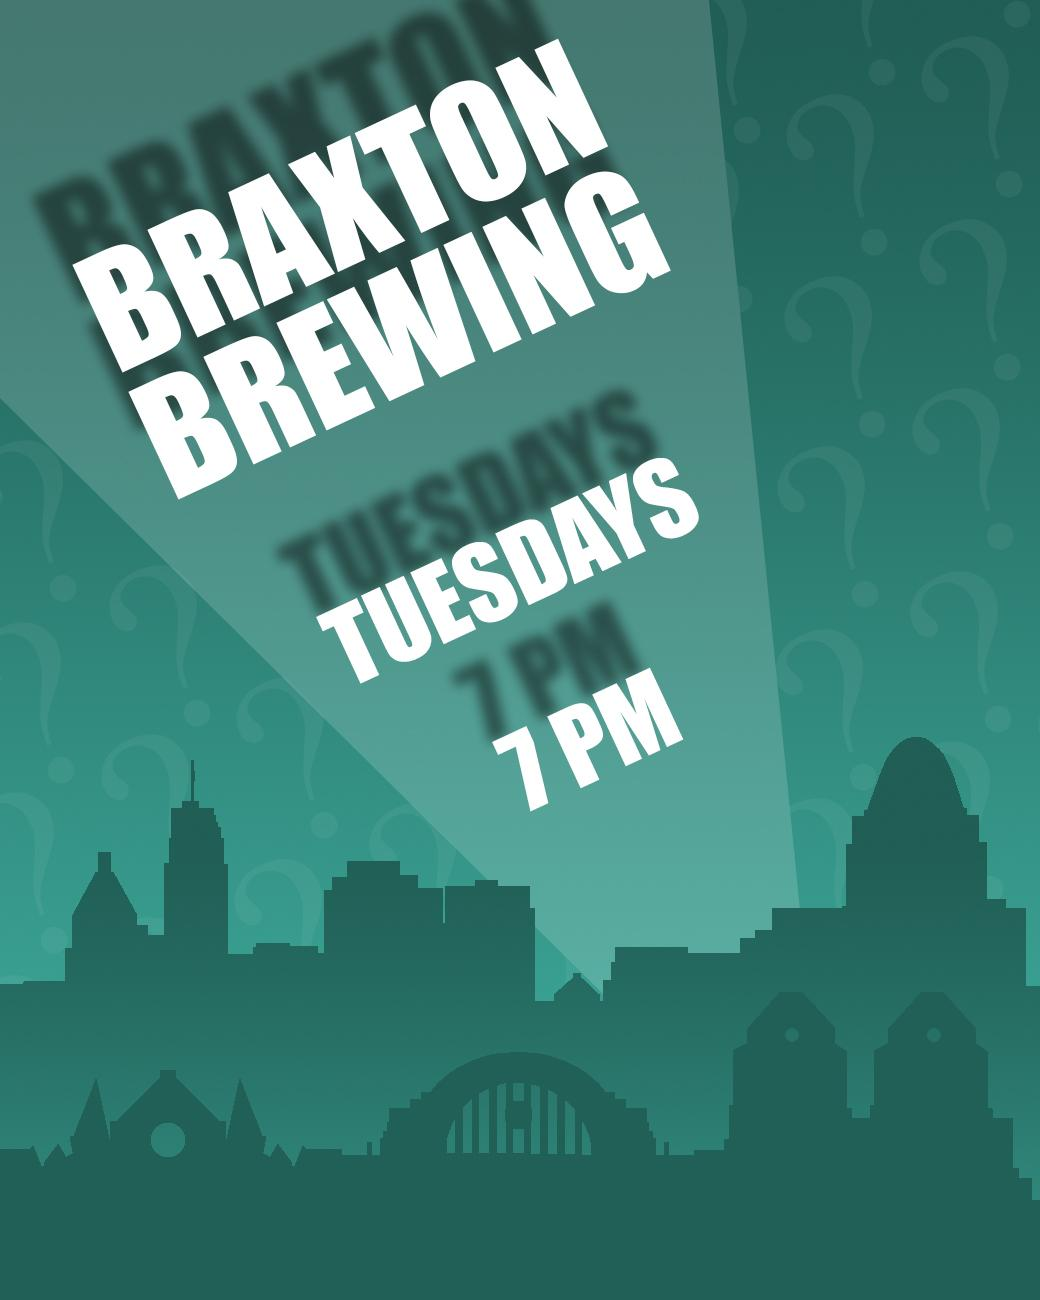 Braxton Brewing has trivia every Tuesday starting at 7 PM. ADDRESS: 27 W. 7th Street (41011) / Image: Phil Armstrong, Cincinnati Refined // Published: 8.30.17